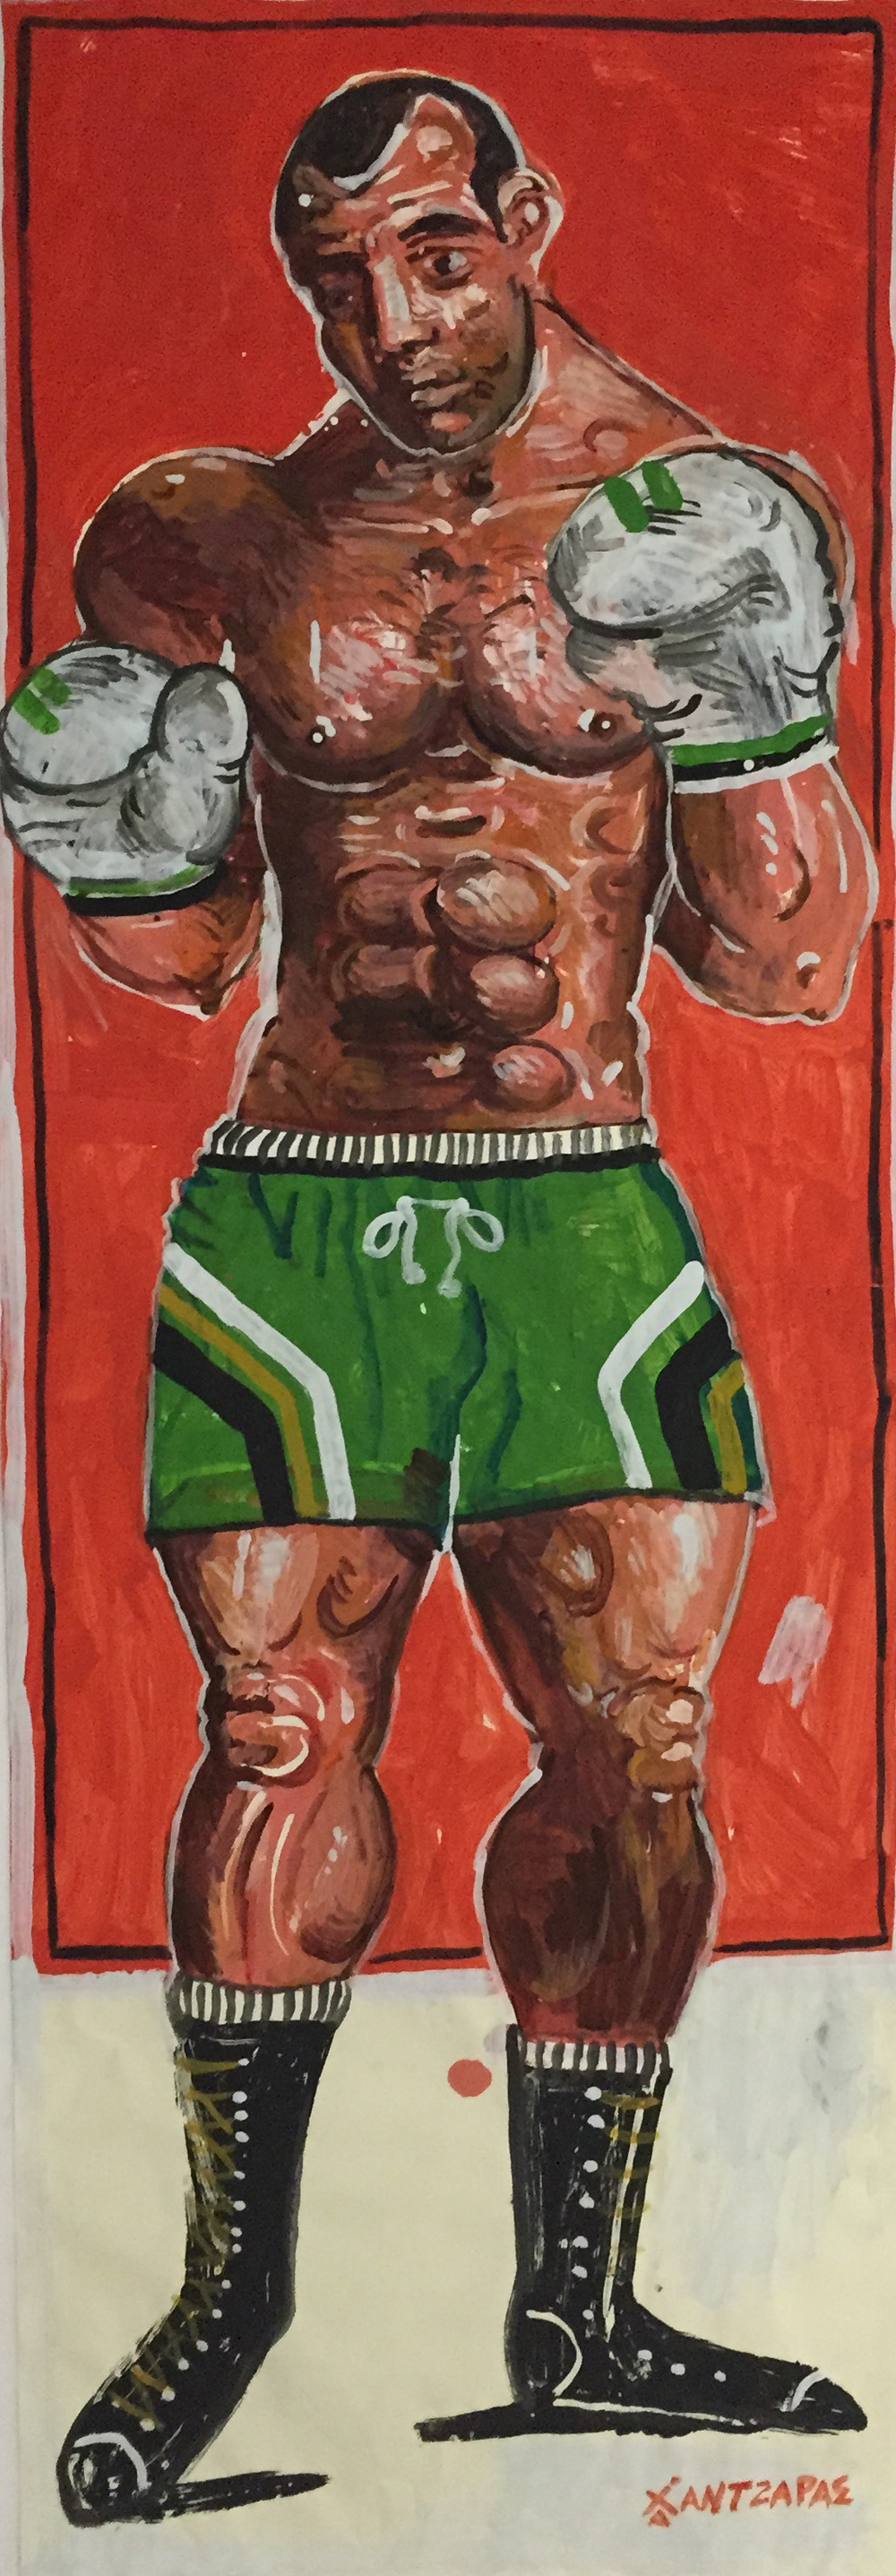 "Boxer #3 Acrylic on paper Approx size of artwork: 28"" x 79"" / 70 x 200 cm"